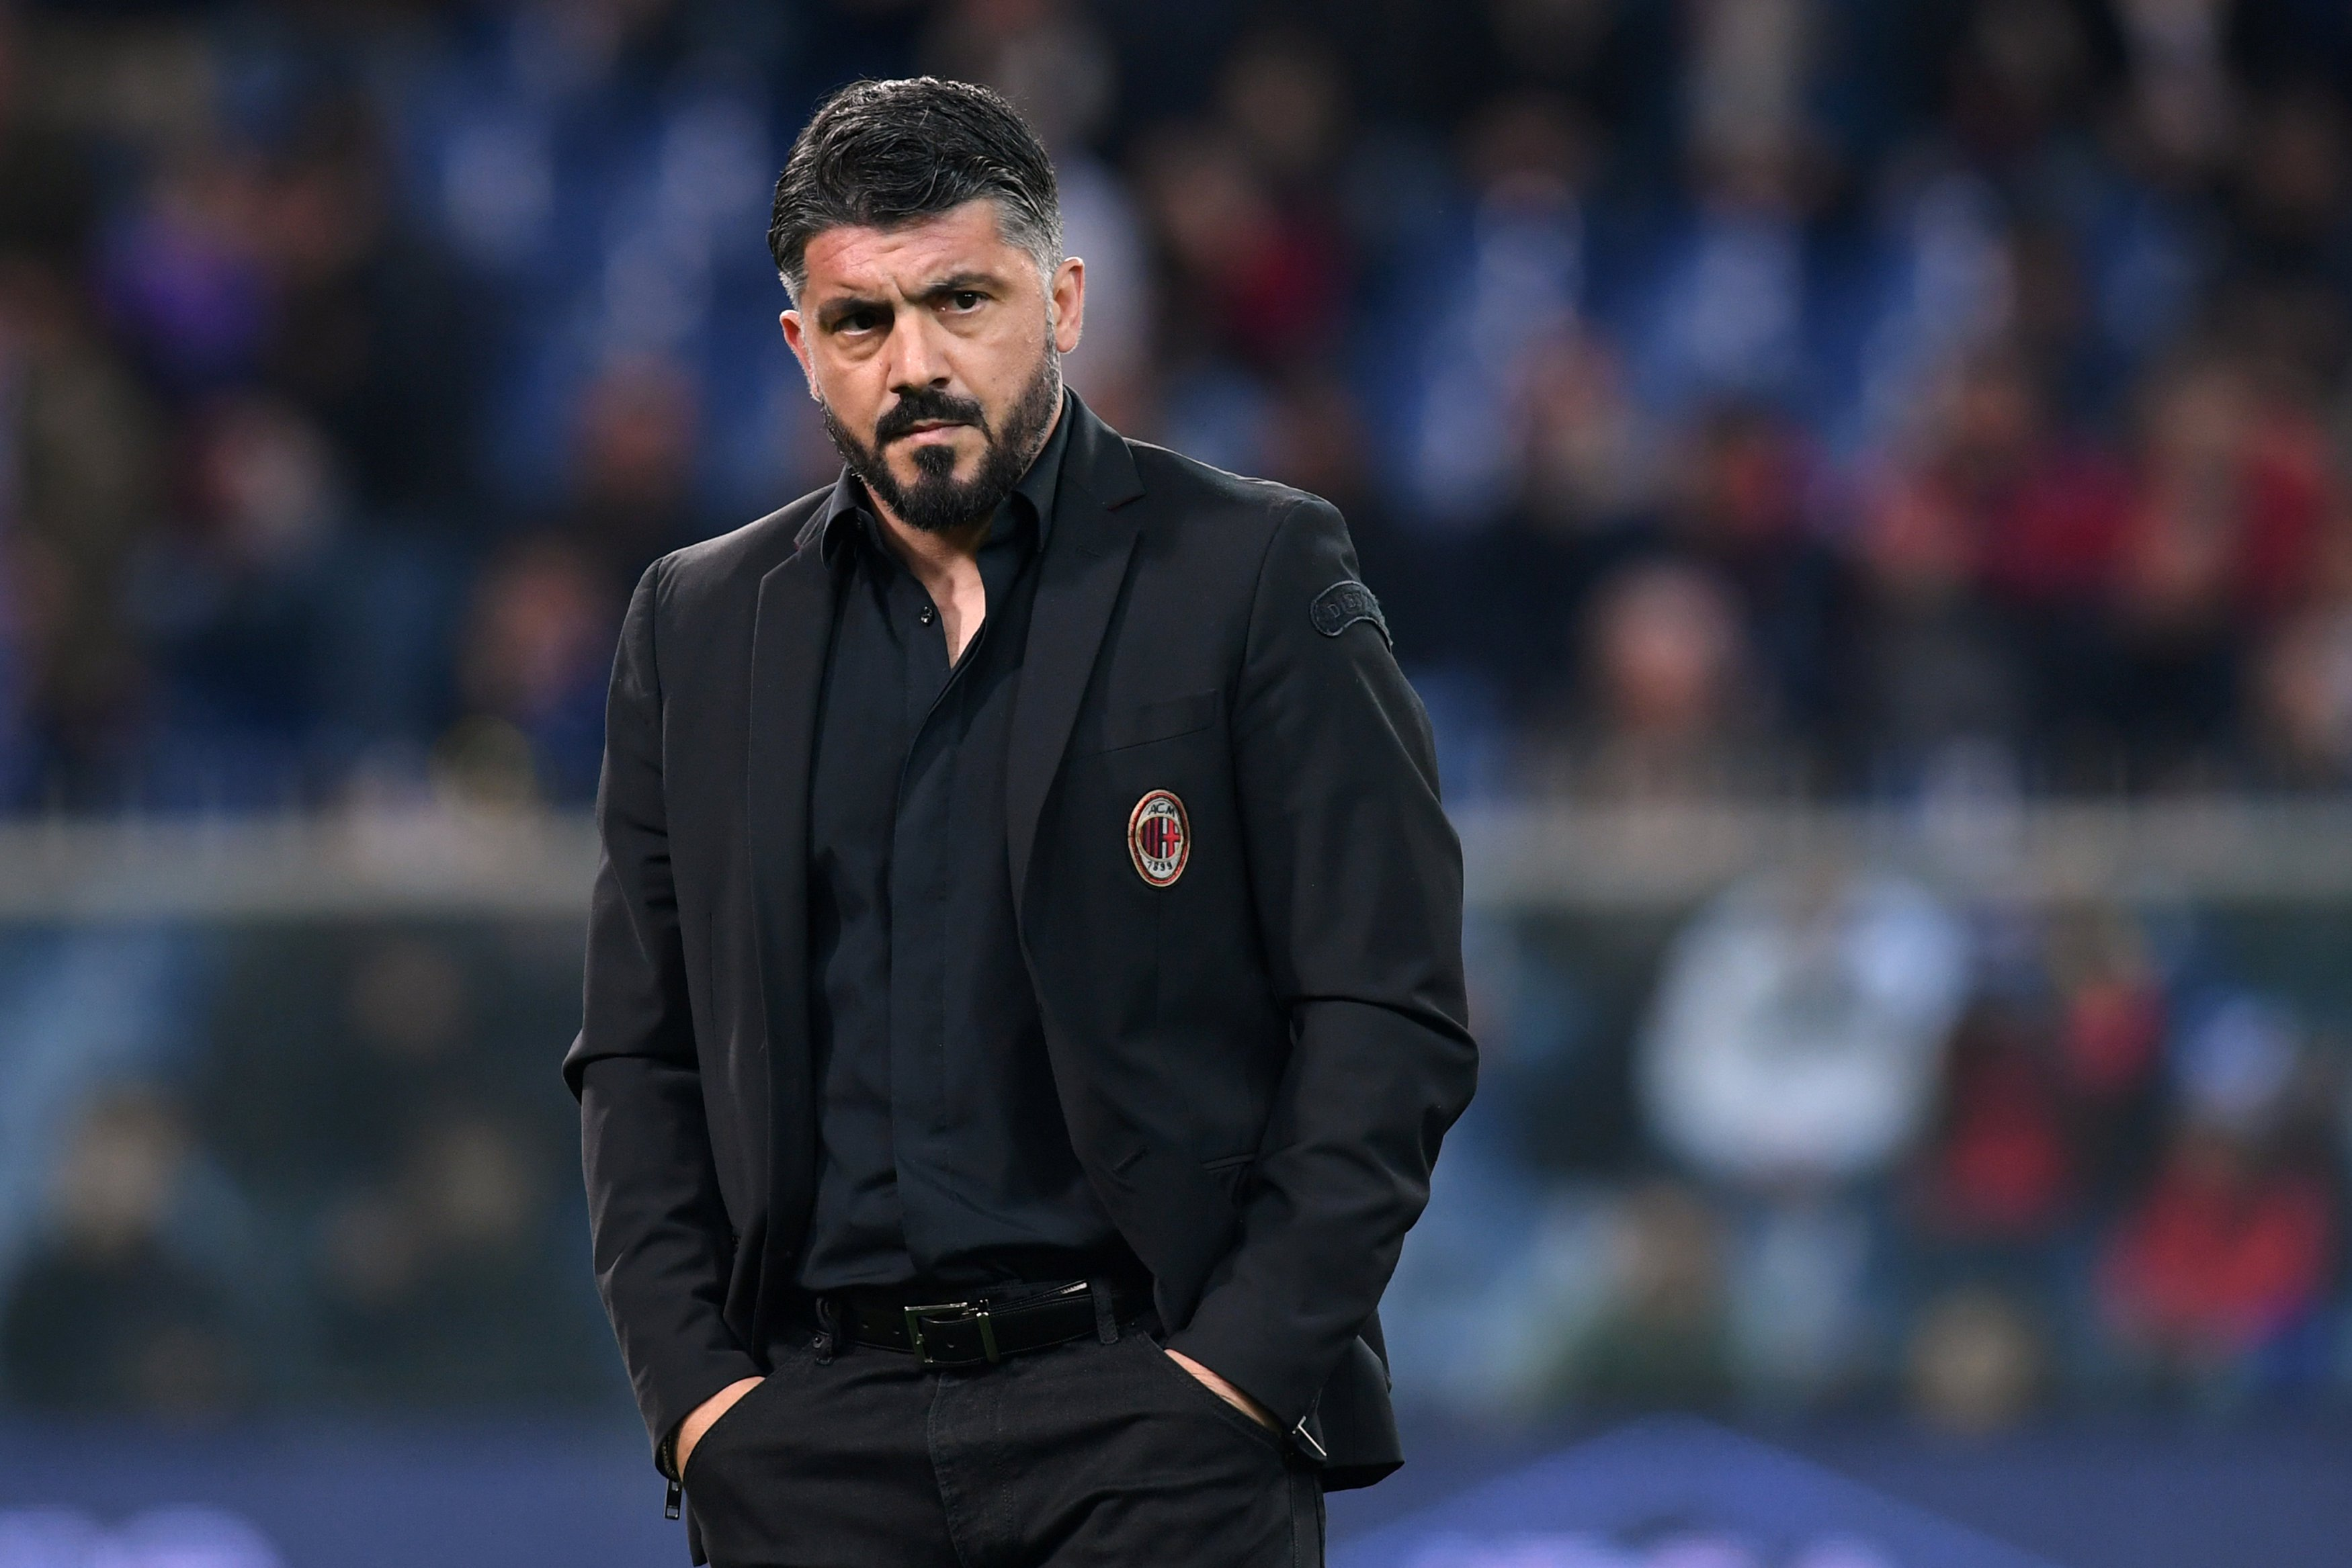 Gattuso warns Barcelona about having no fear to face them